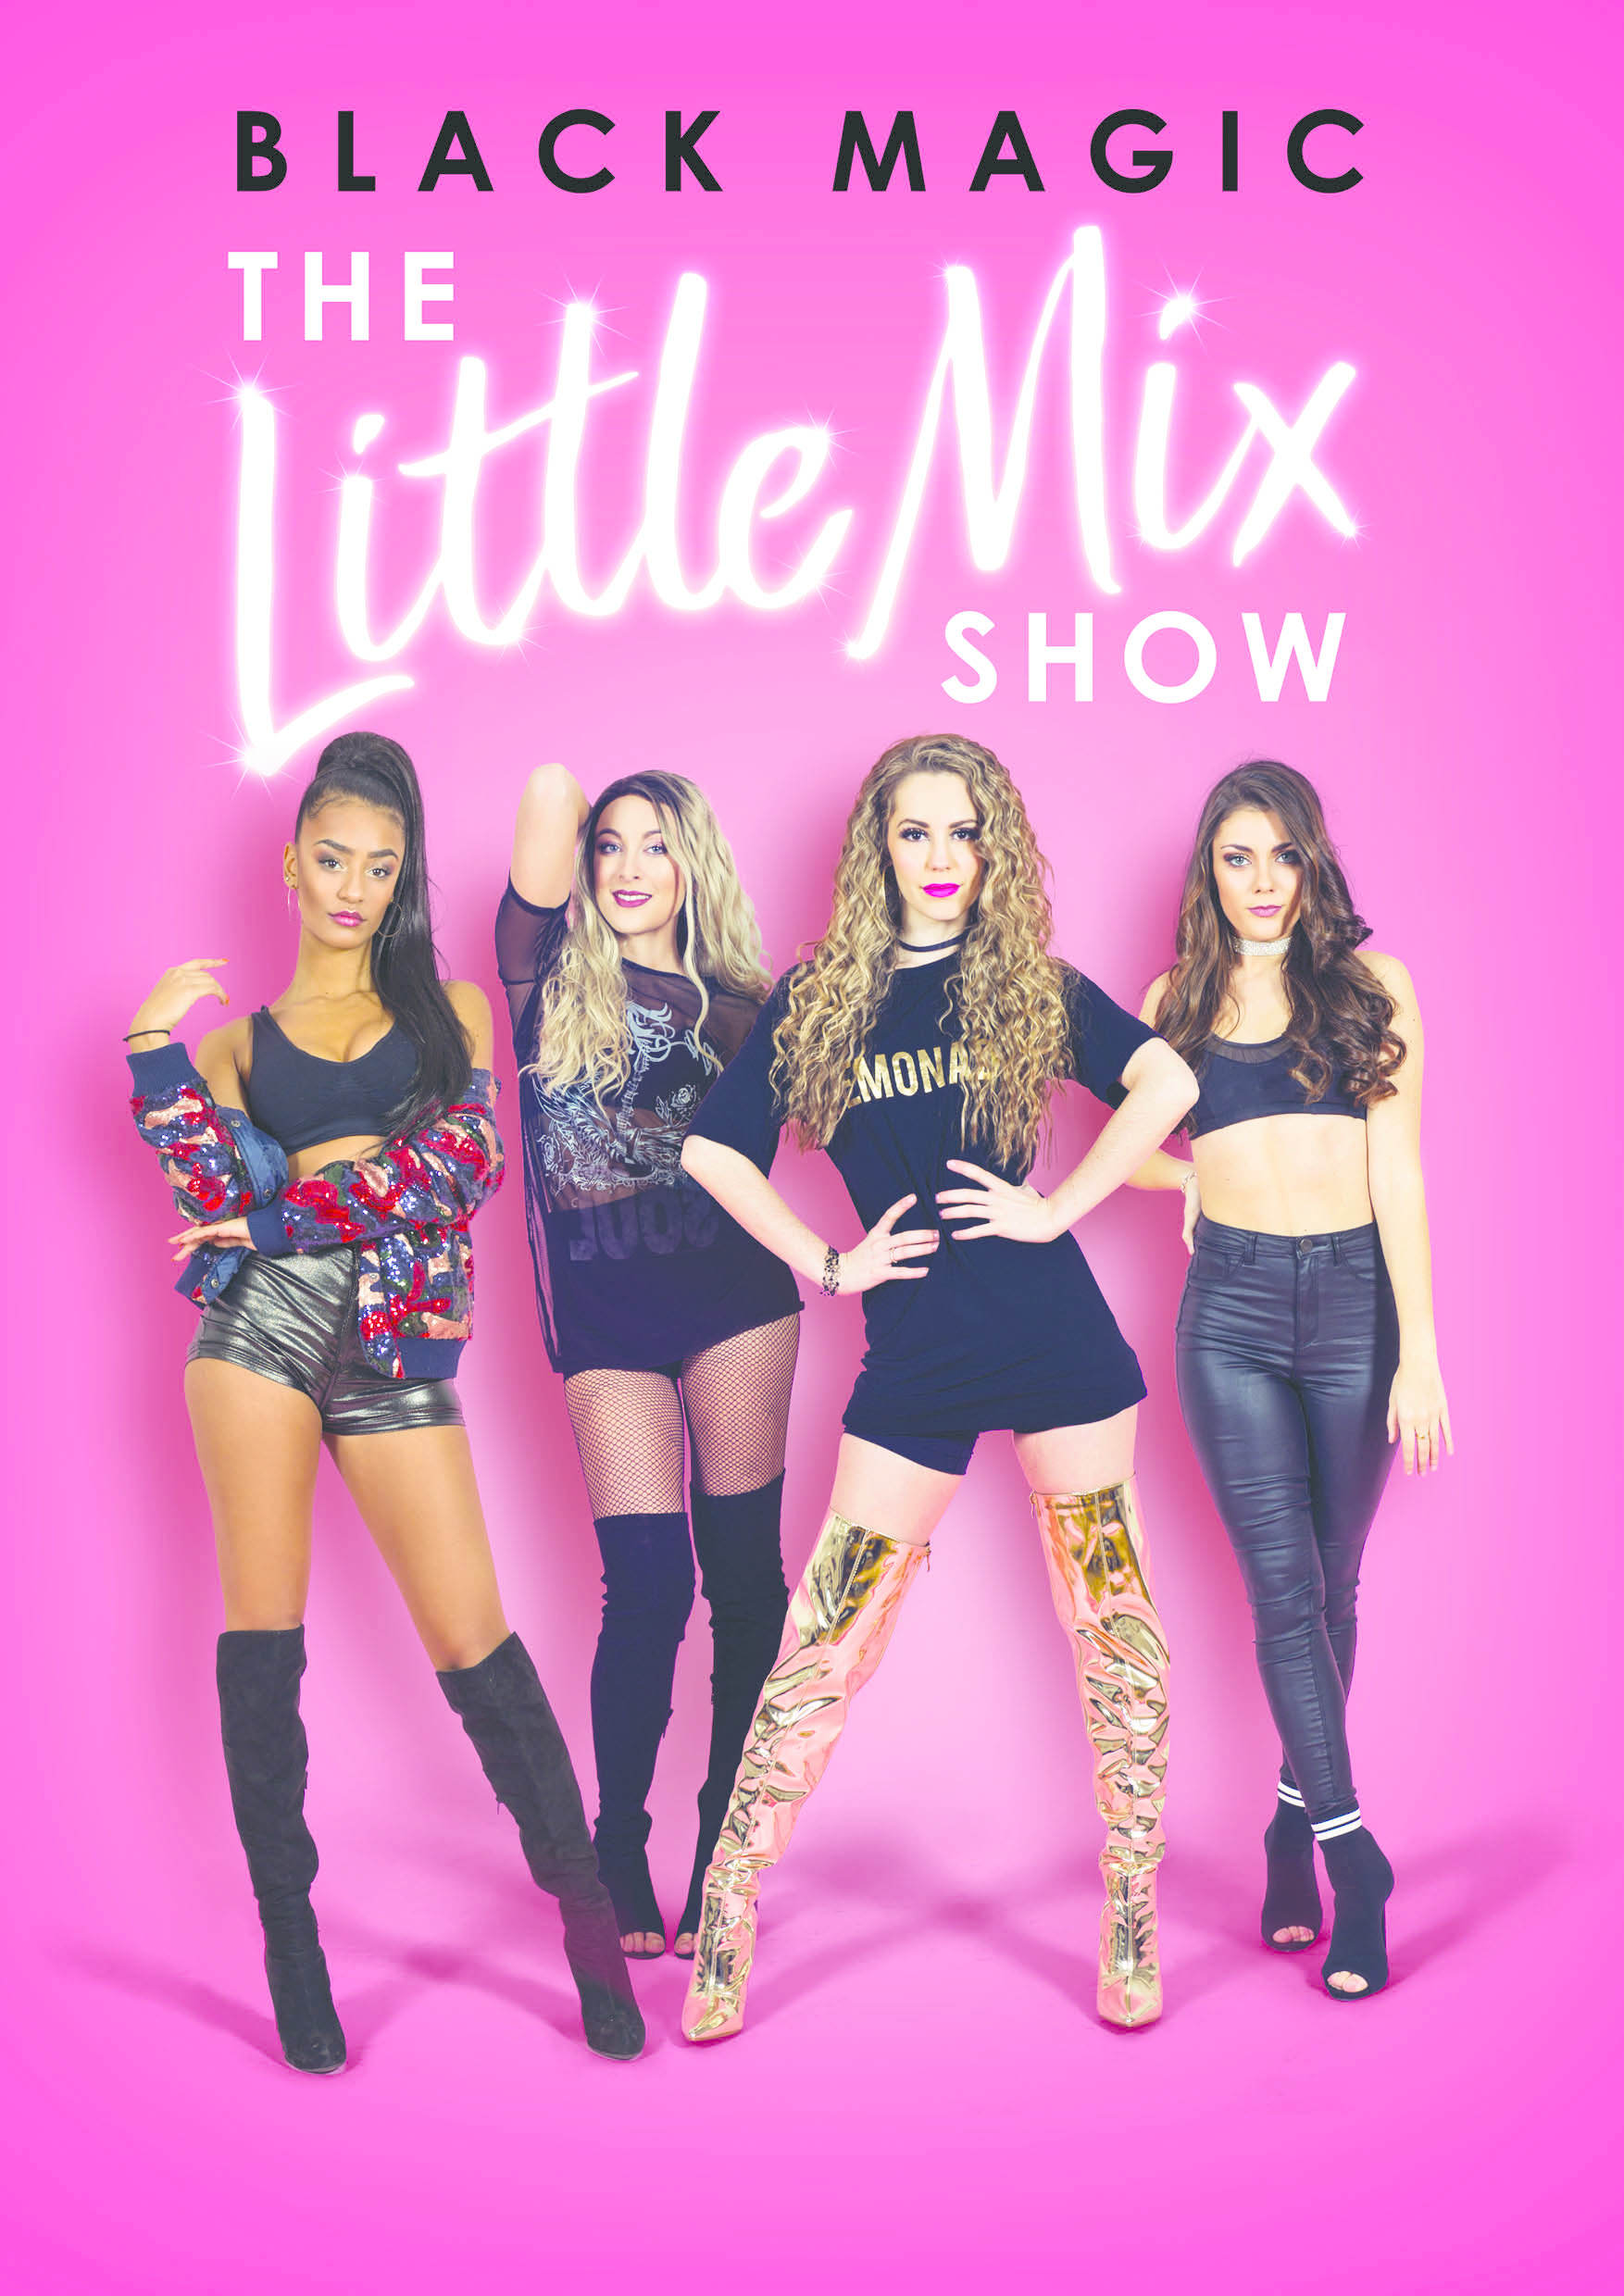 LITTLE MIX: Tribute show at The Princess Theatre